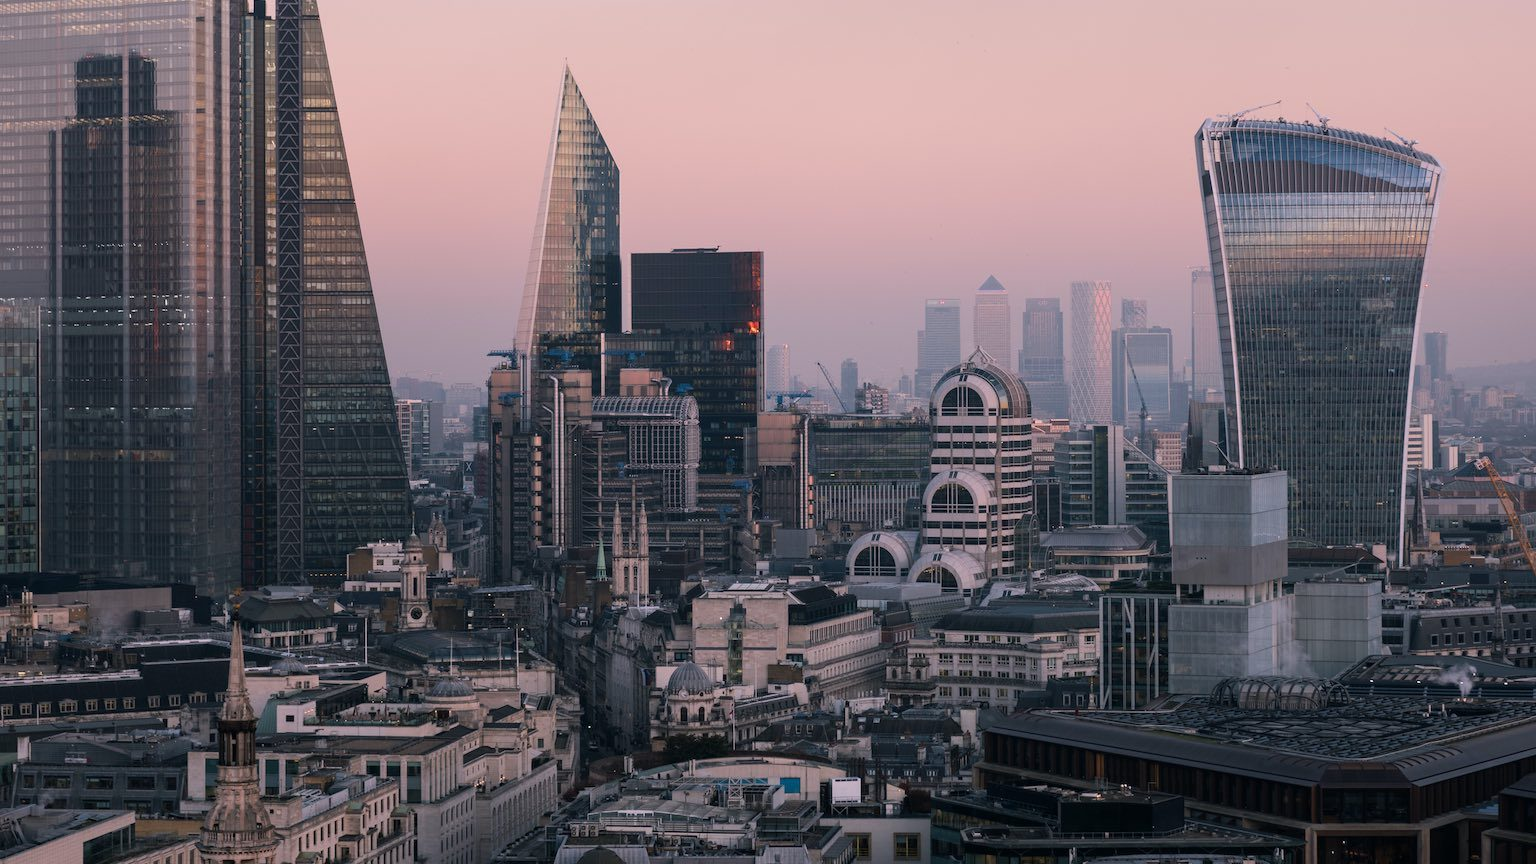 Elevated view of the City of London's illuminated financial district skyline at dusk.